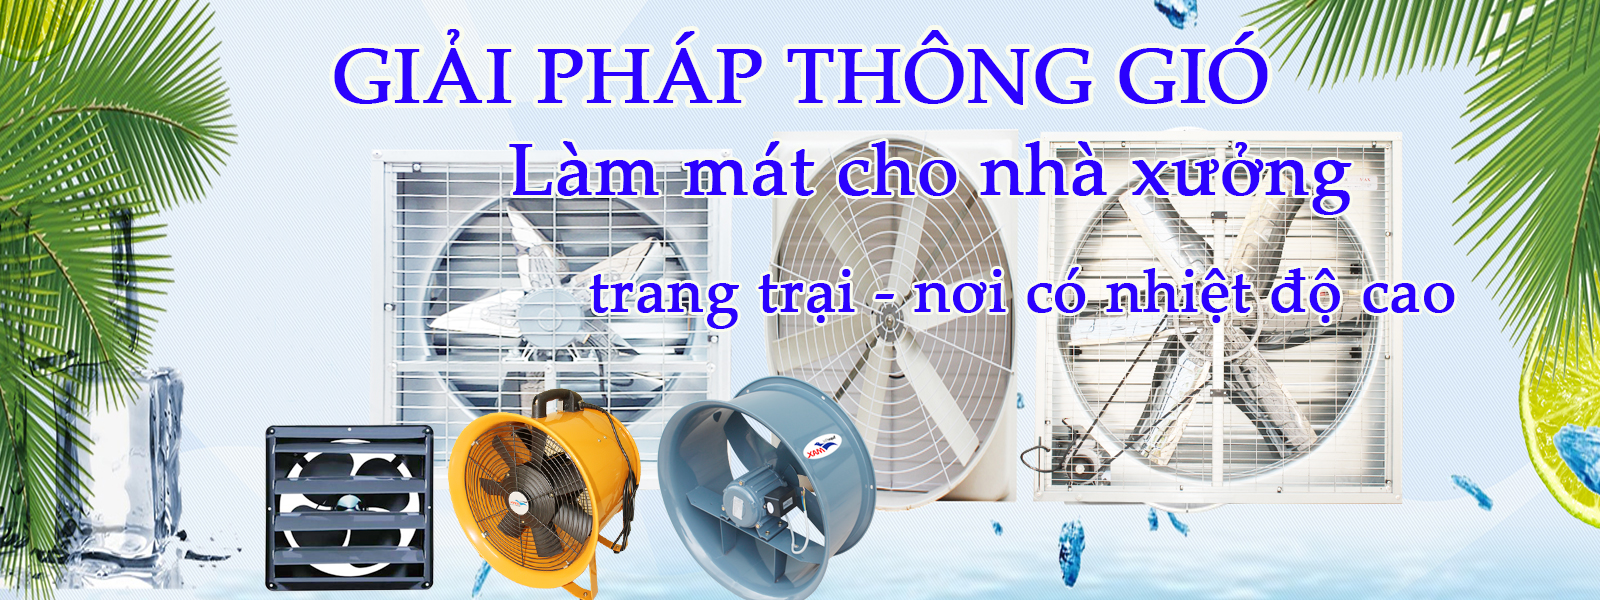 anh-chay-5